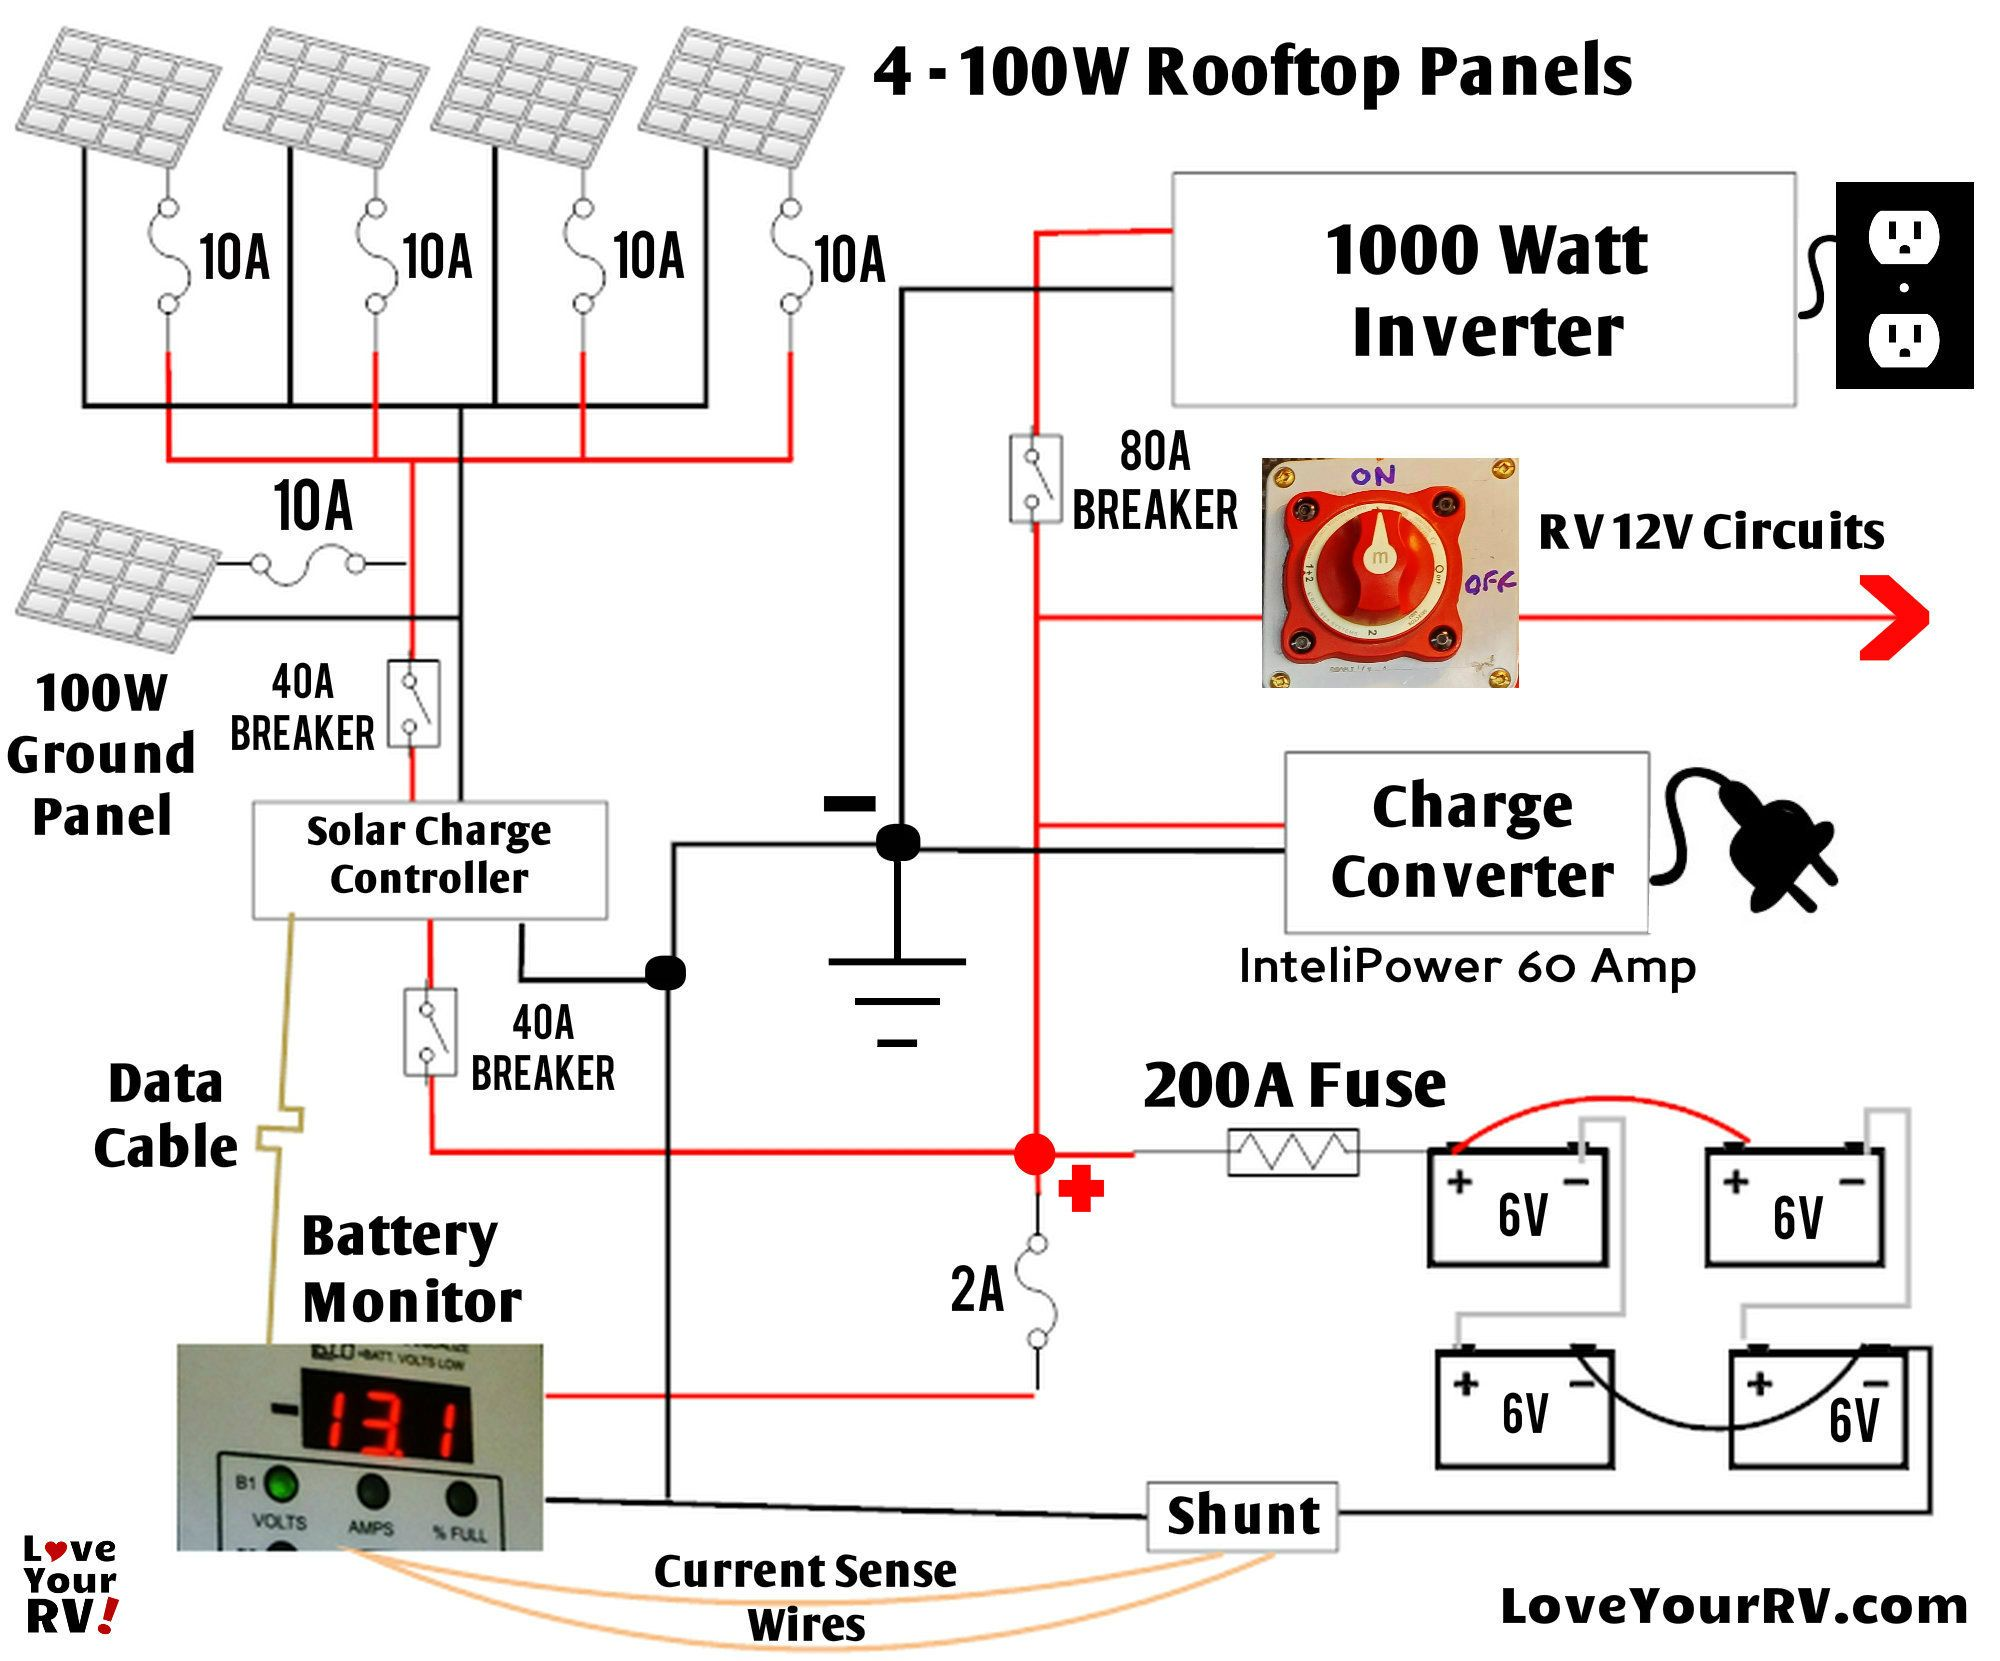 power wheels 12 volt wiring diagram detailed look at our diy rv boondocking power system | rv ...